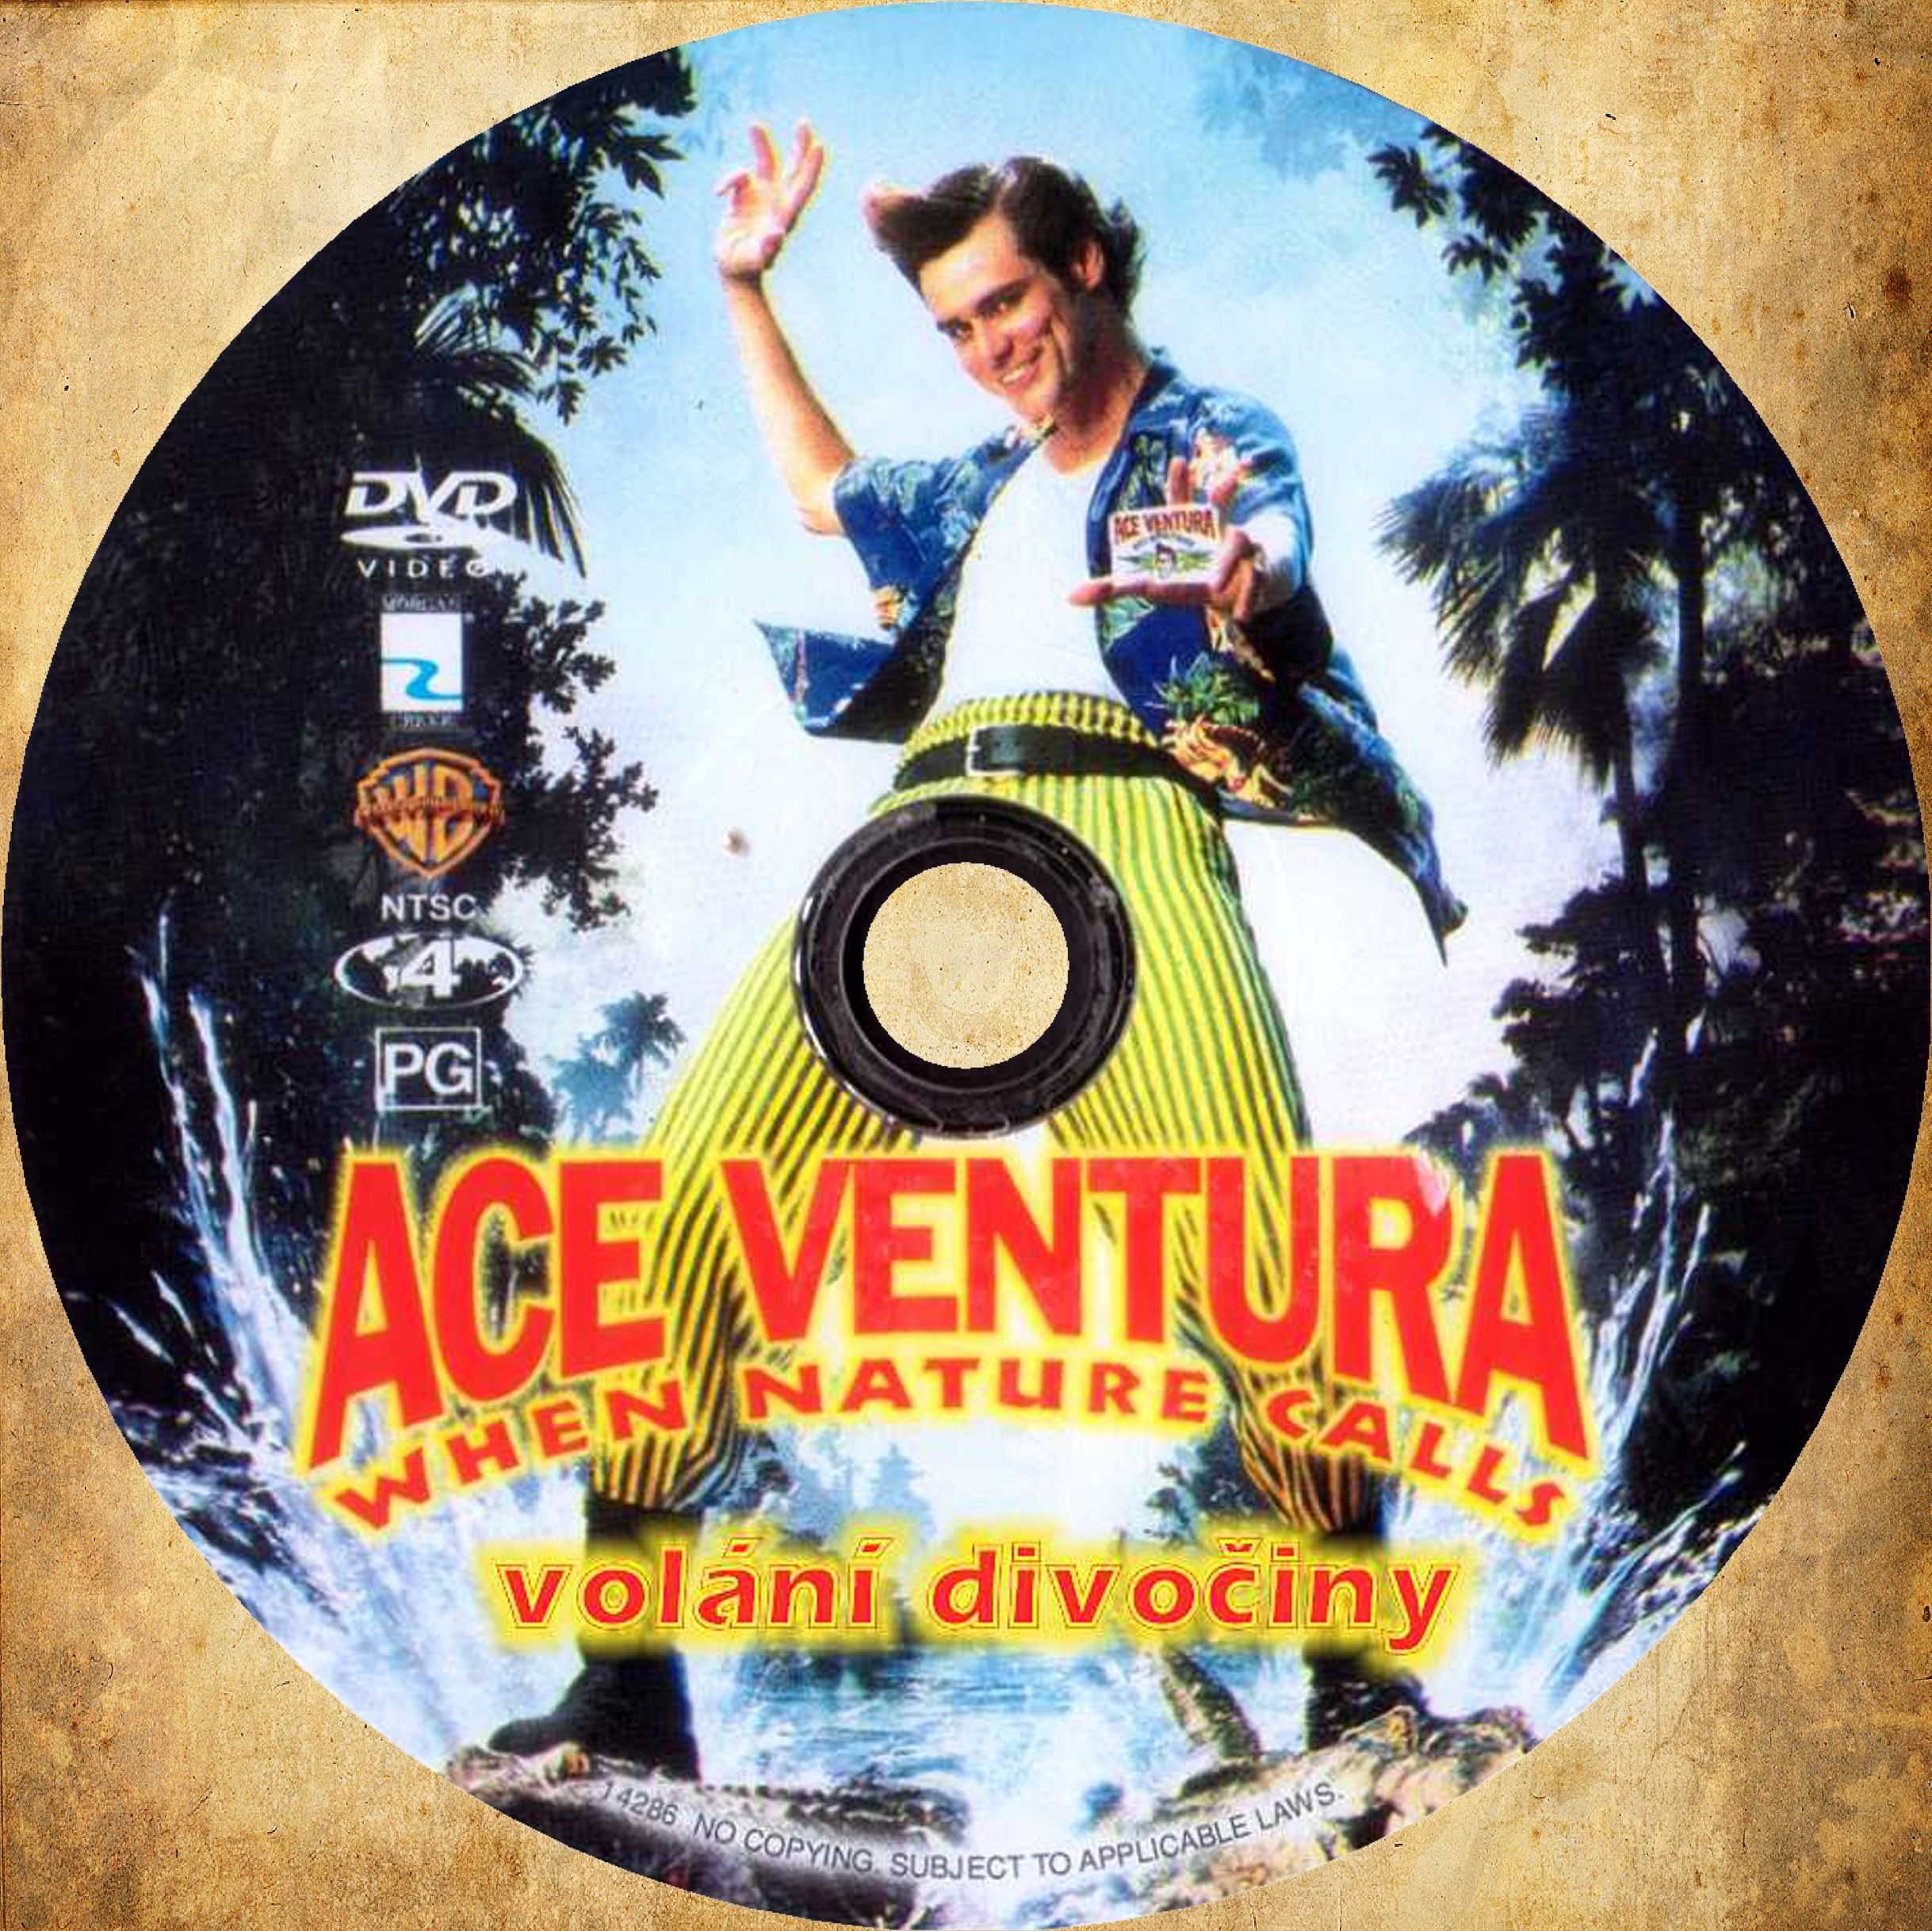 ace ventura download full movie